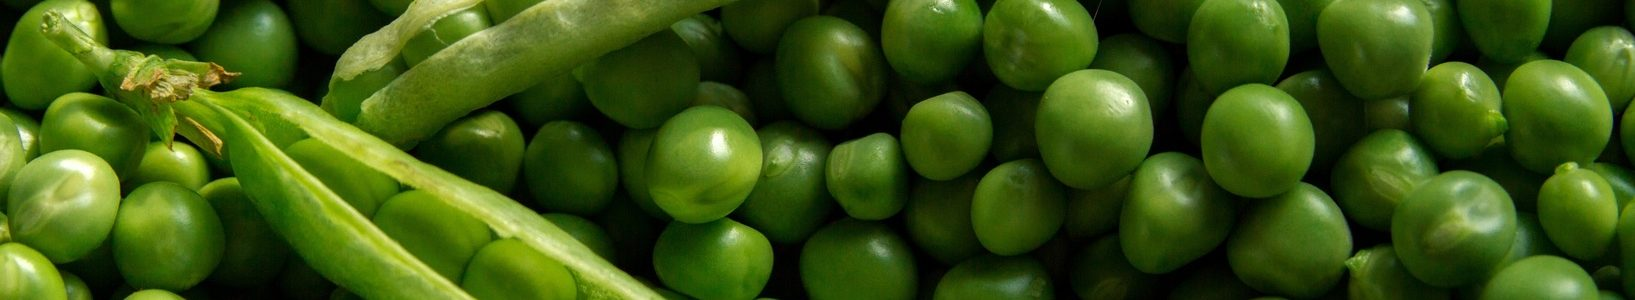 growth-plant-fruit-seed-food-green-1204685-pxhere.com